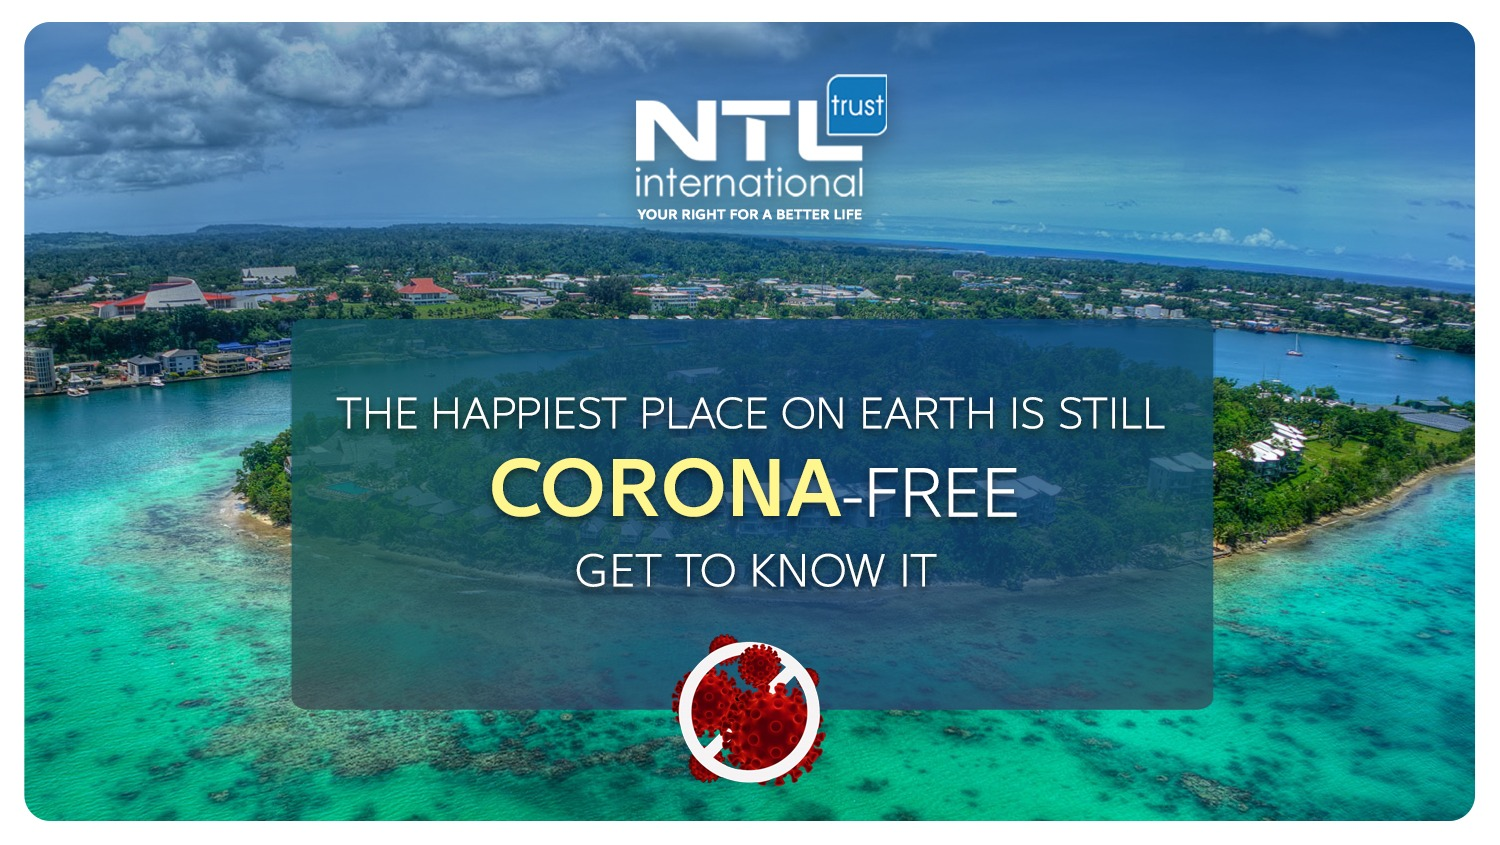 The Happiest Place on Earth is Still CORONA-FREE NTL